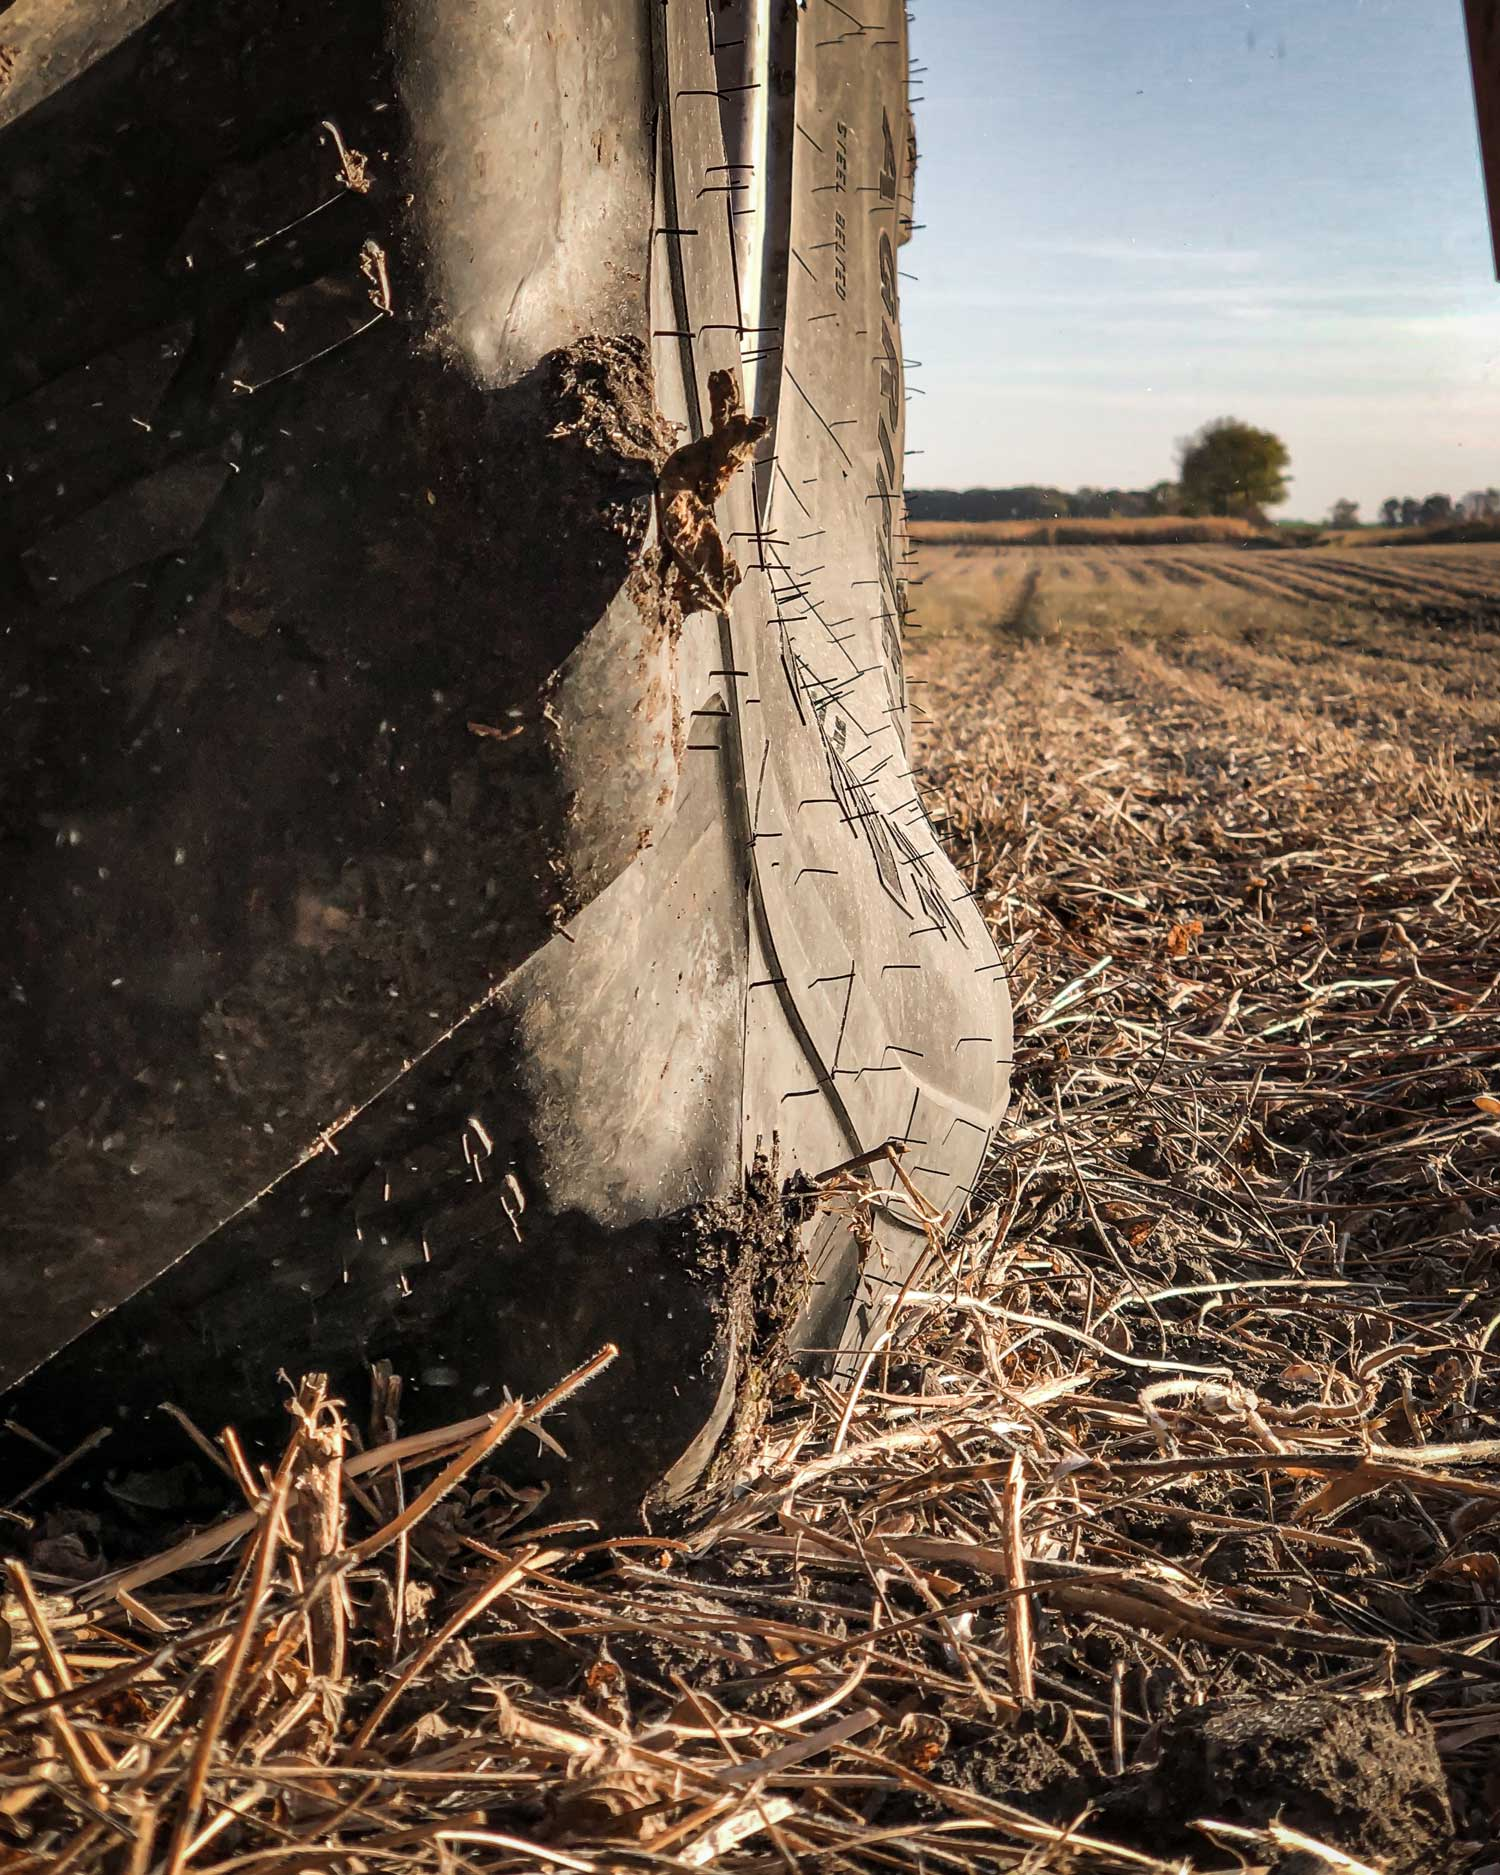 The Alliance 372 Agriflex combine tire can carry the same load as a standard radial at significantly less air pressure.